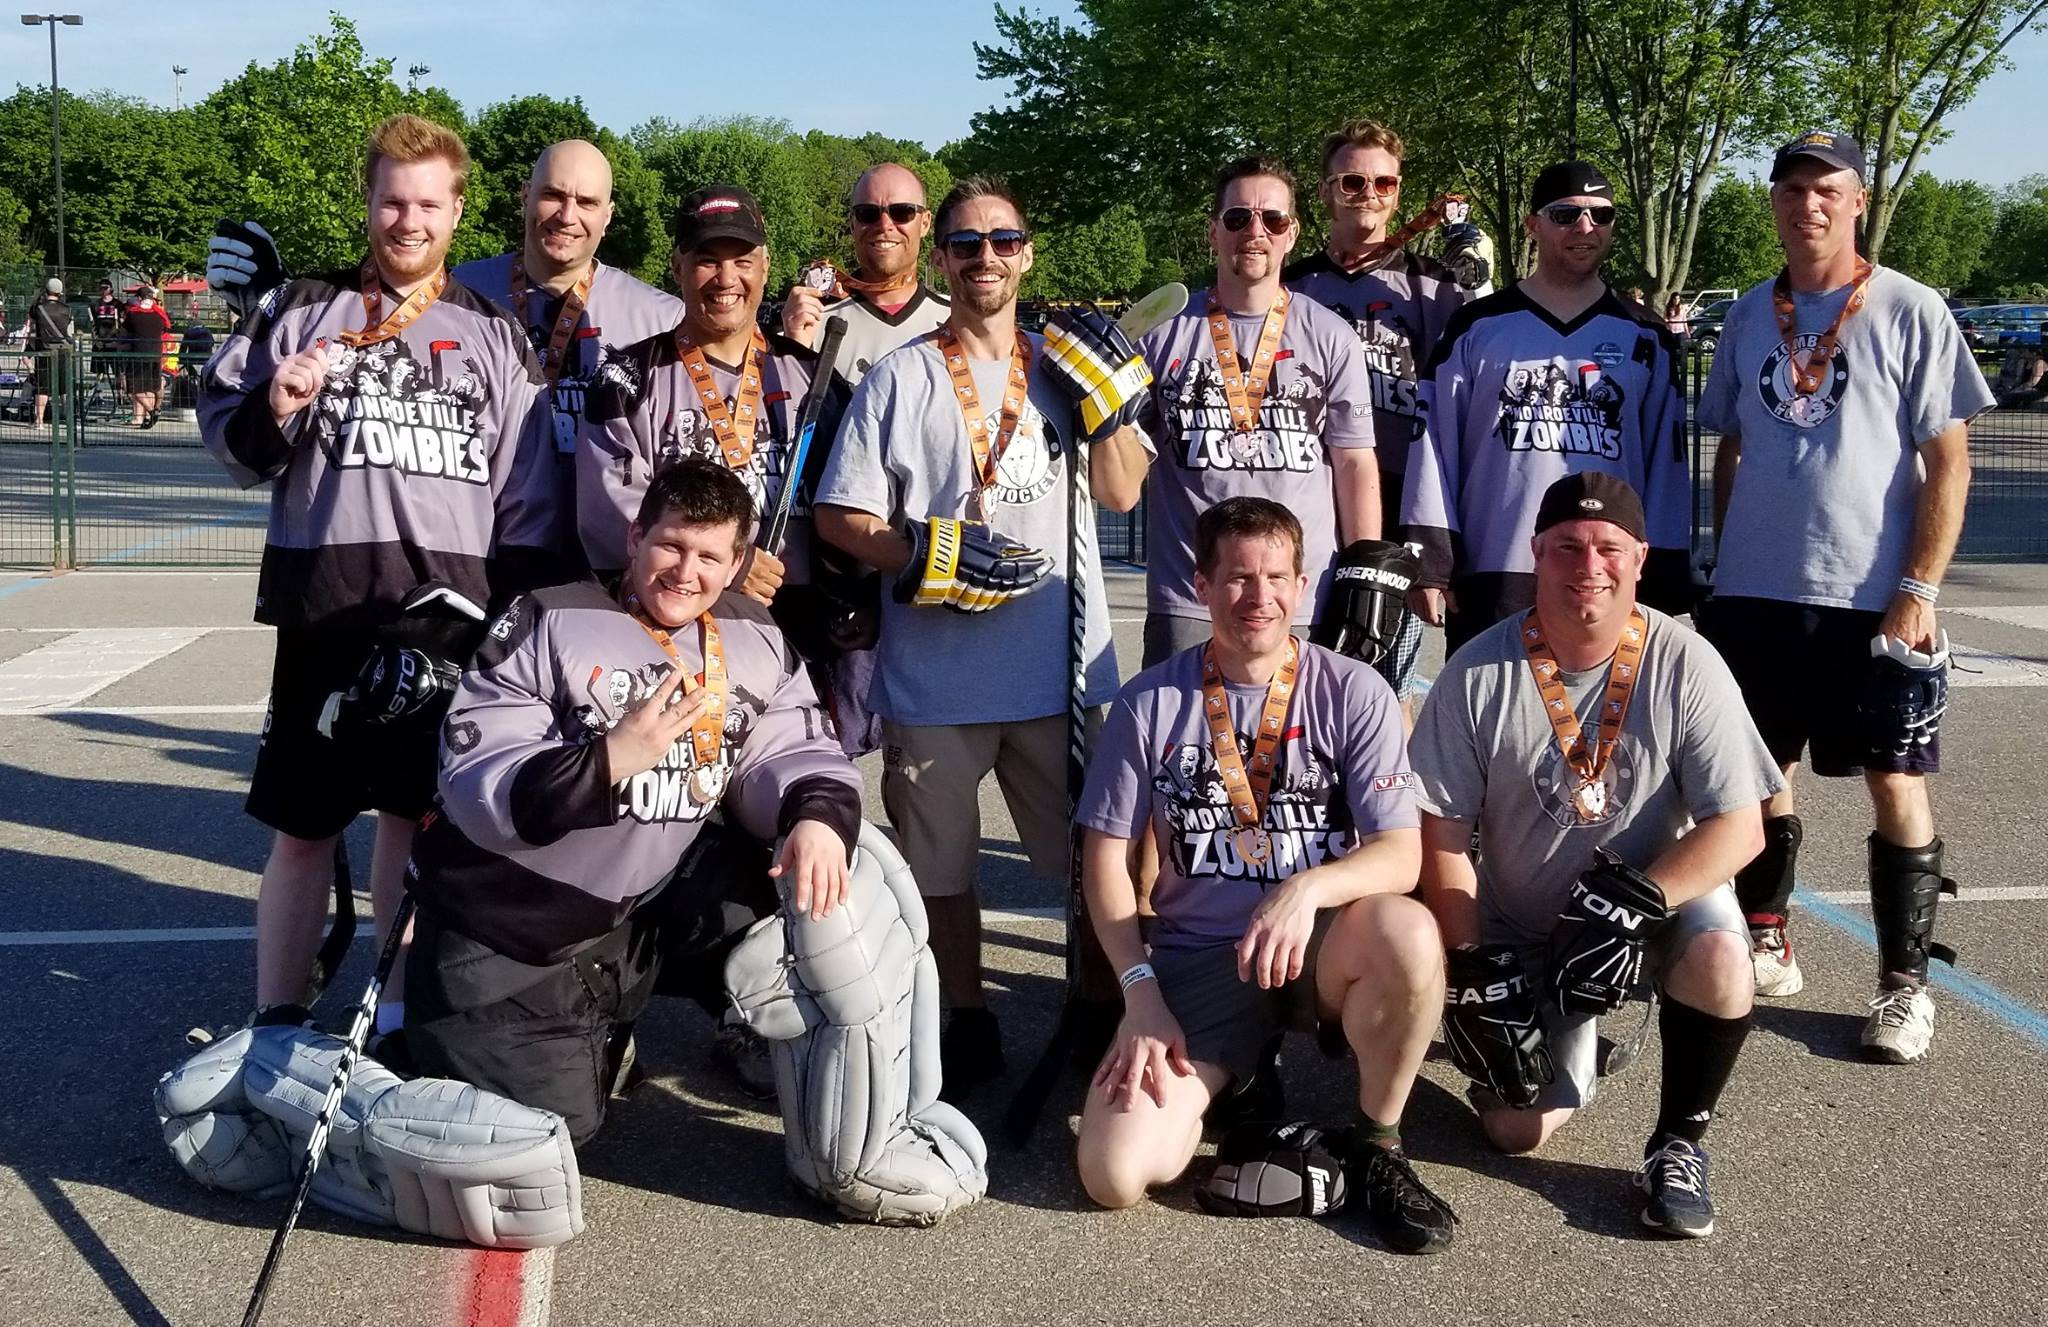 Monroeville Zombies Bronze Medalists in 2017